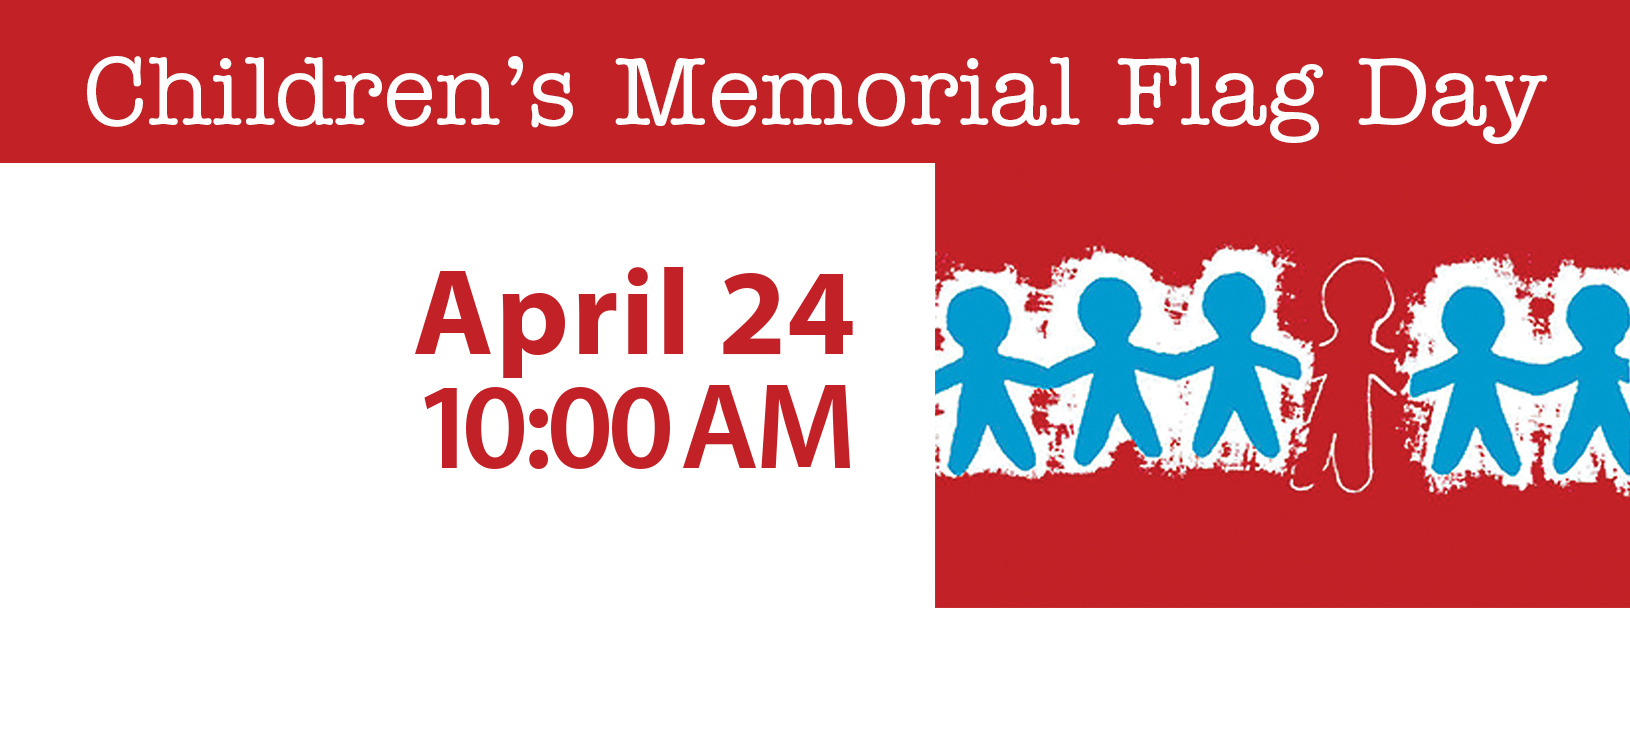 Facebook Profile Banner - Children's Memorial Flag Day 2020